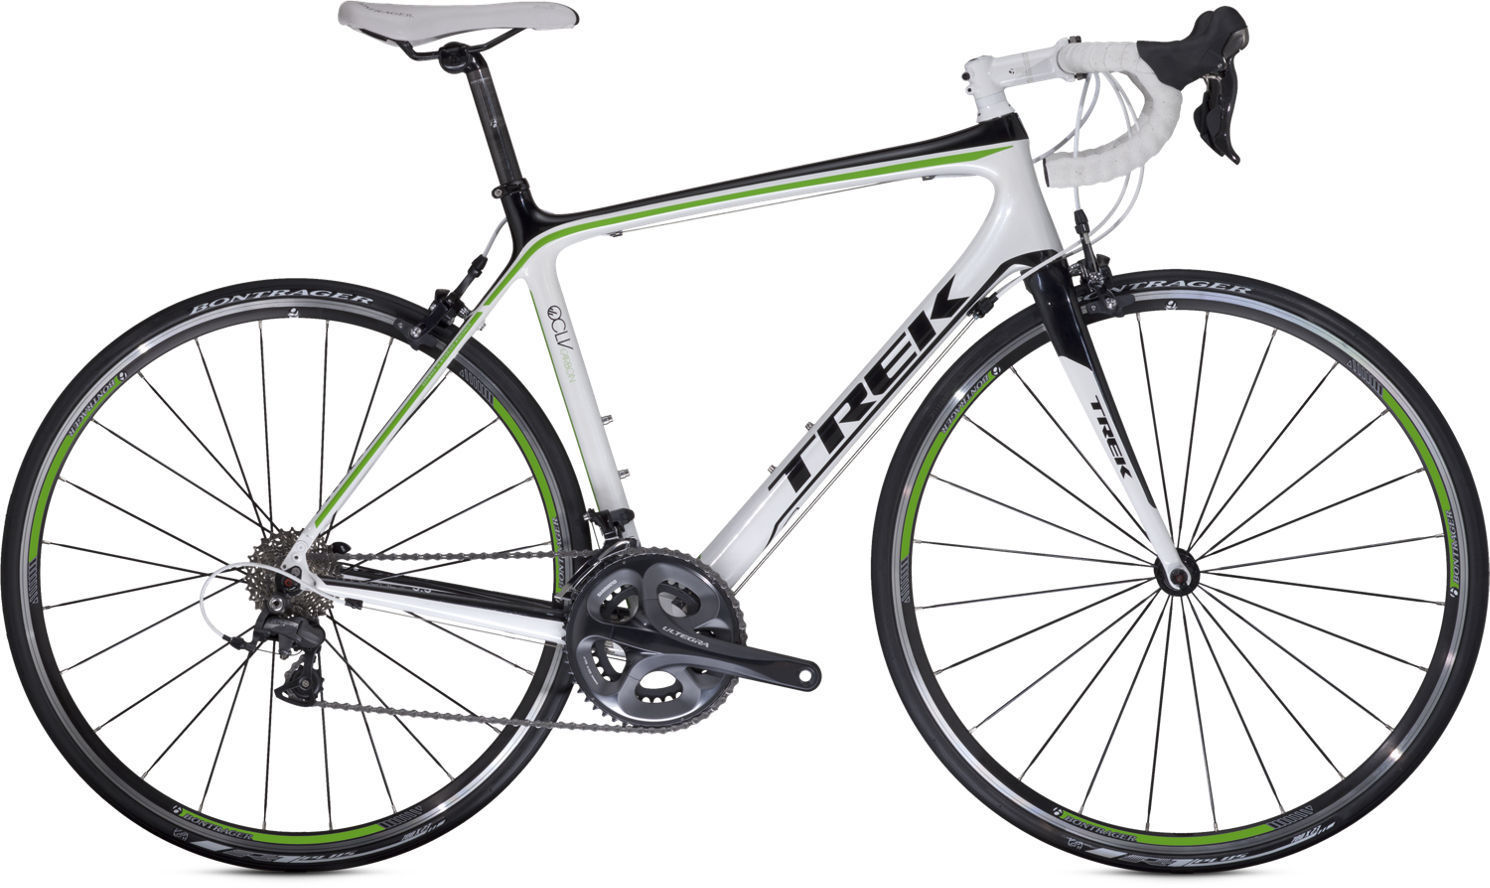 2014 Trek Road Bikes | Autos Post